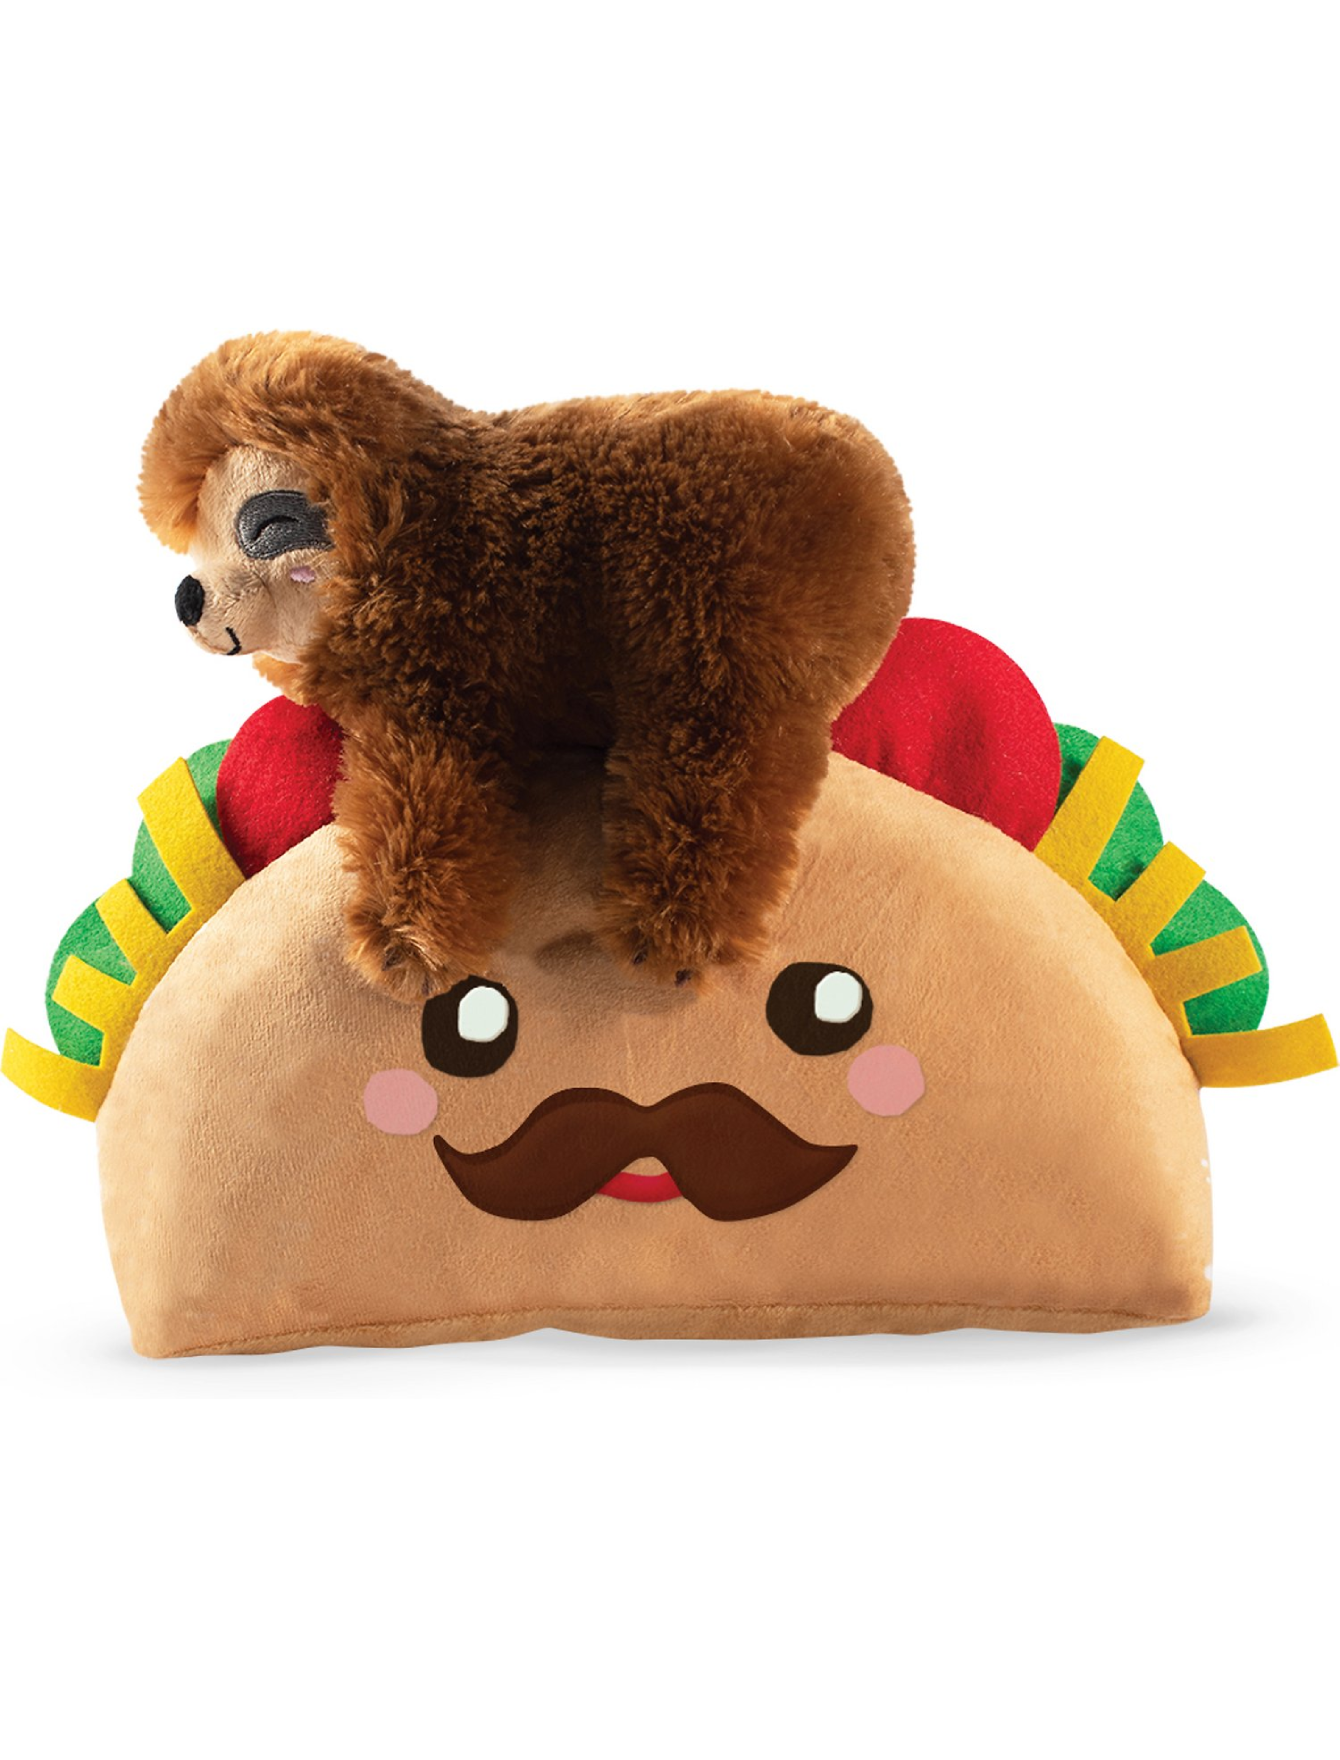 Fringe Studio Taco Sloth, Dog Squeaky Plush Toy | Perromart Online Pet Store Singapore